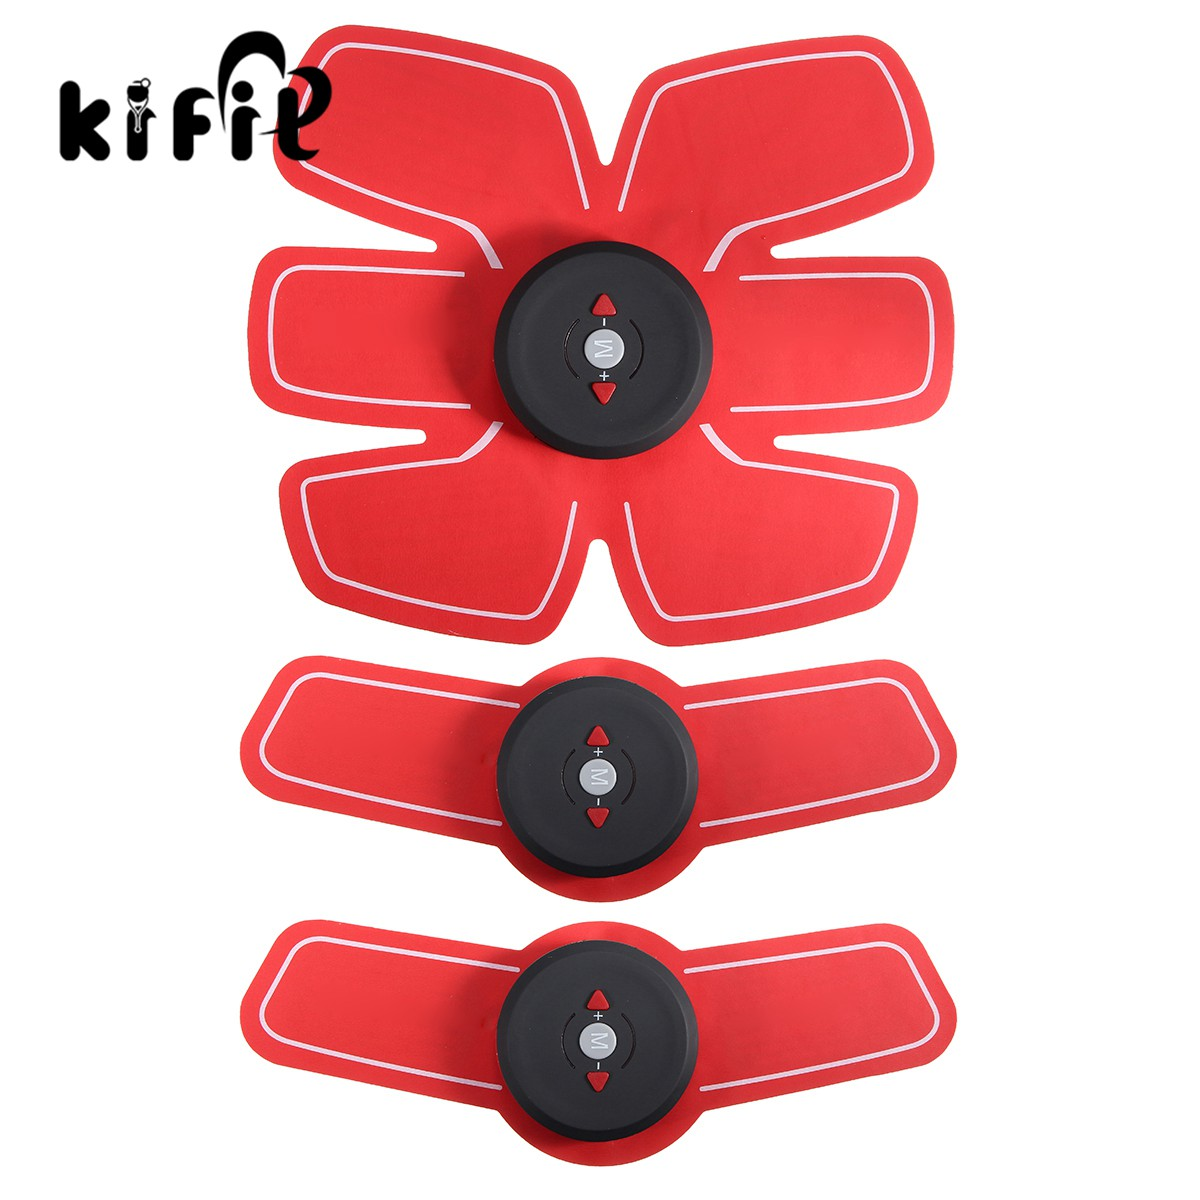 Kifit Electric Weight Loss Slimming Massager Muscle Training Gear Device Training Abdominal Arm Muscles Intensive Body Exercise 2017 hot sale mini electric massager digital pulse therapy muscle full body massager silver